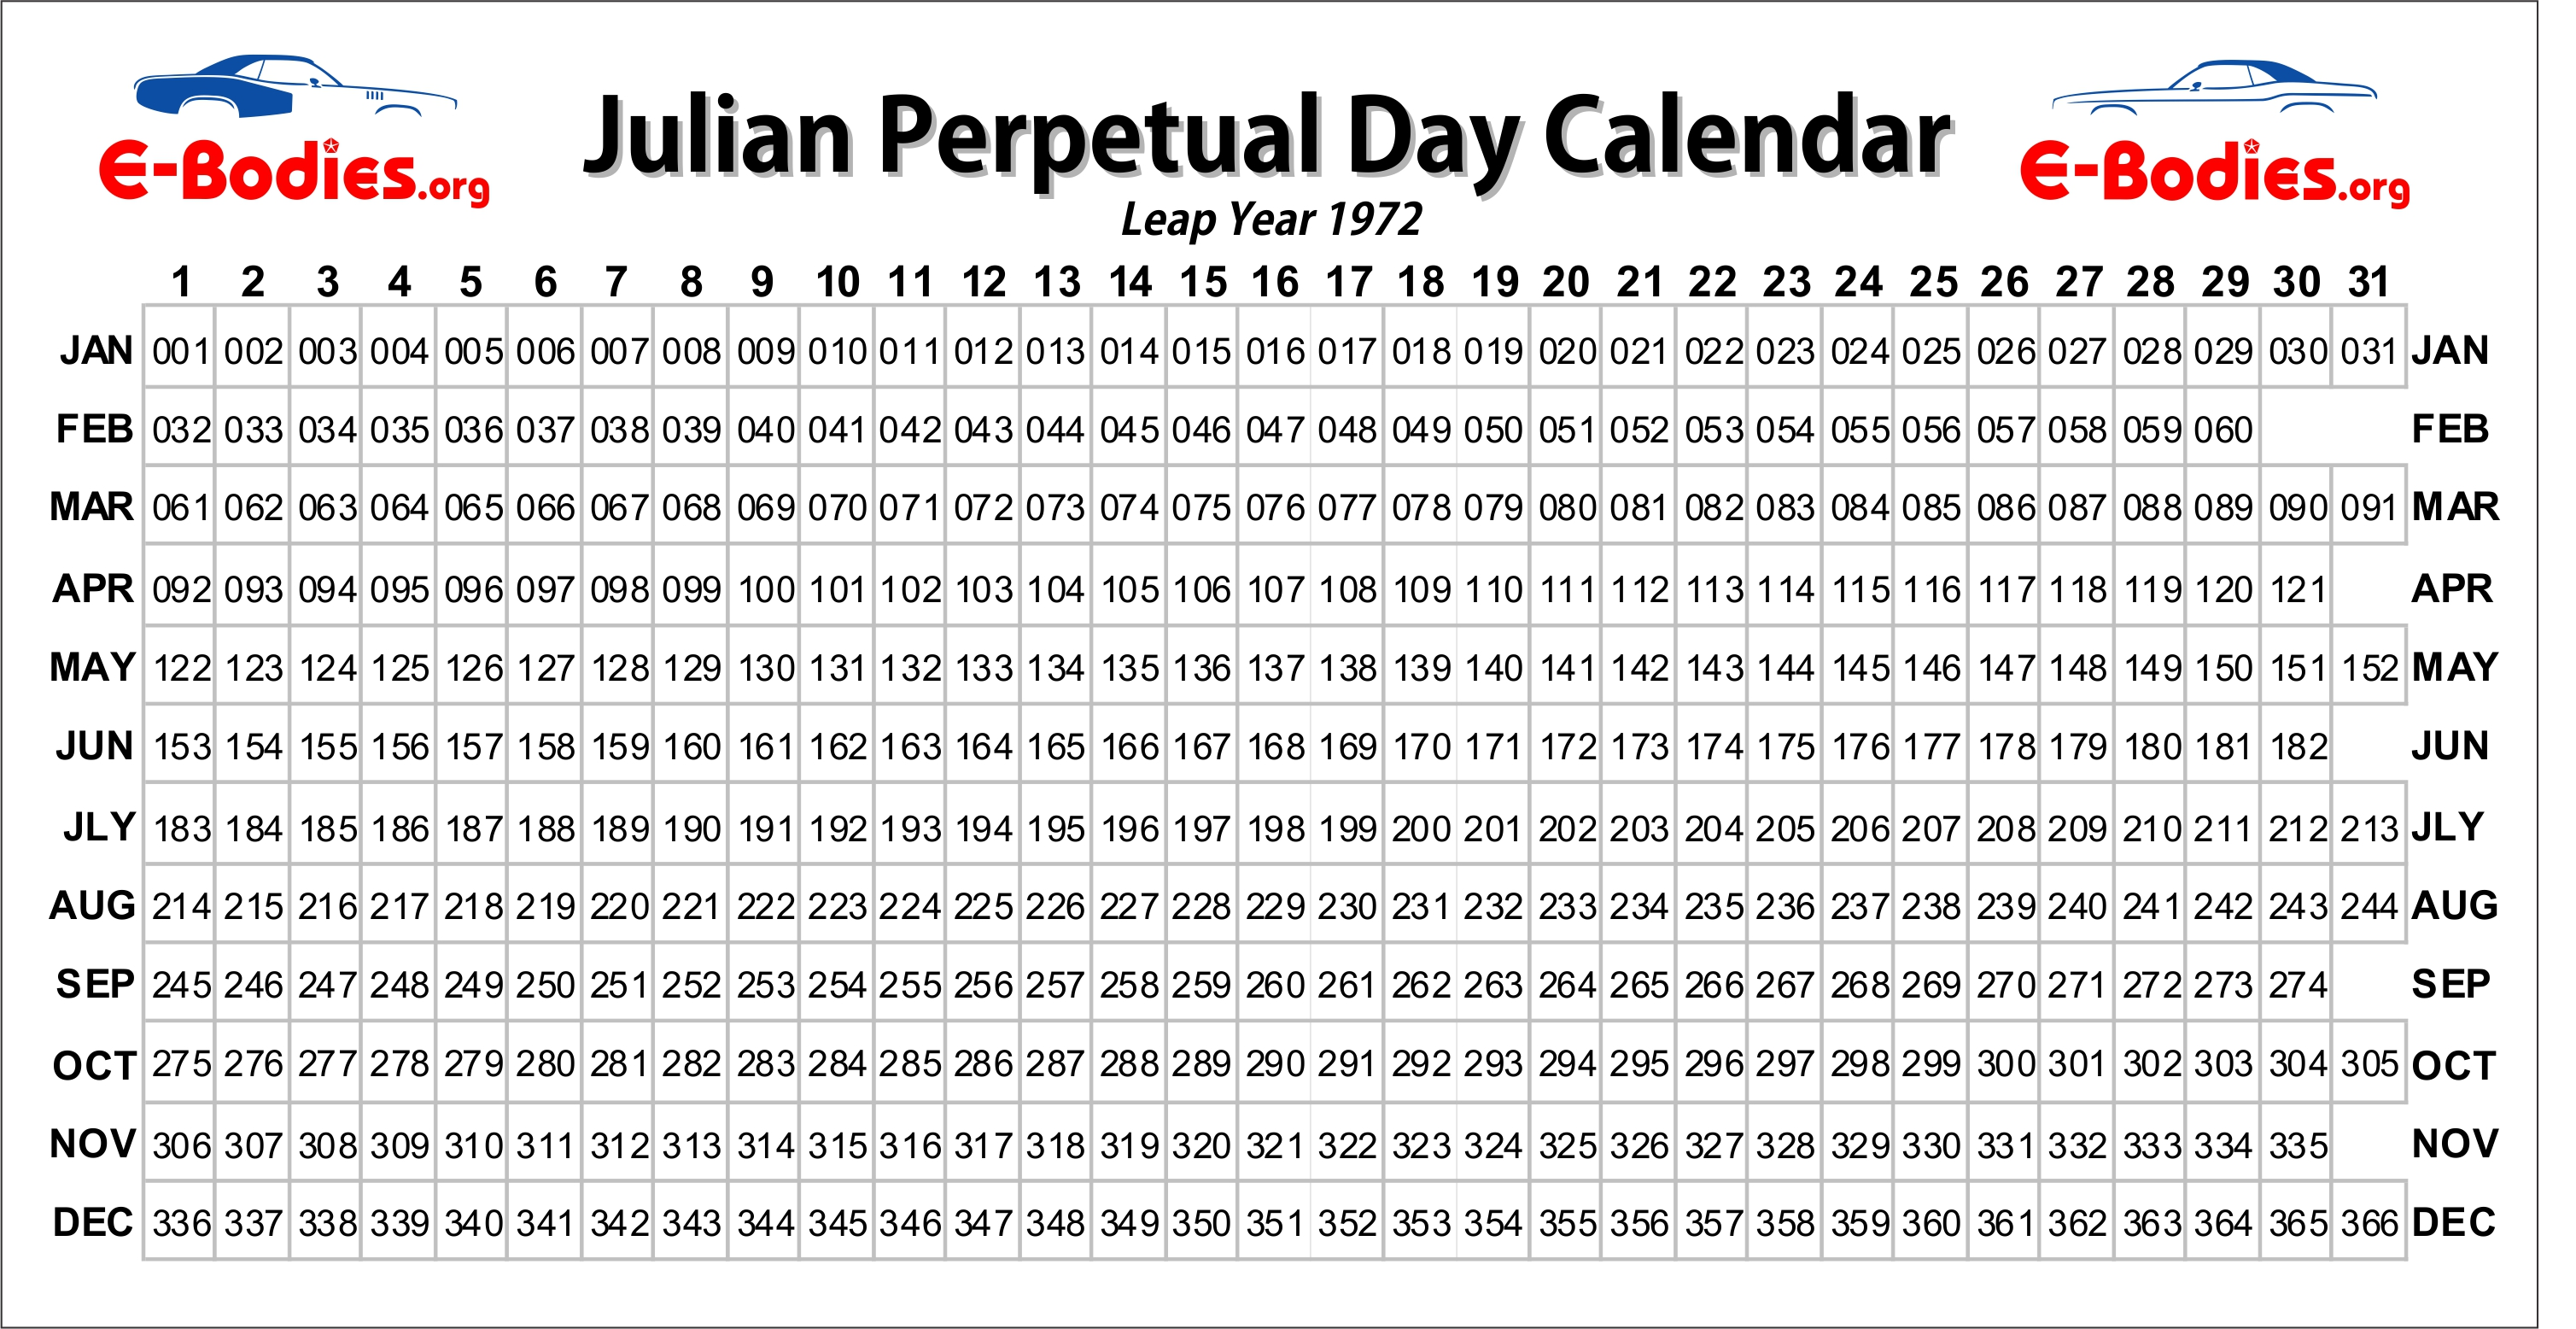 gregorian calender essay Gregorian-lunar calendar conversion table of 2018 (wu-xu year of the dog) gregorian date remarks: 2 sundays are in red solar terms 1 represent the first day of the .